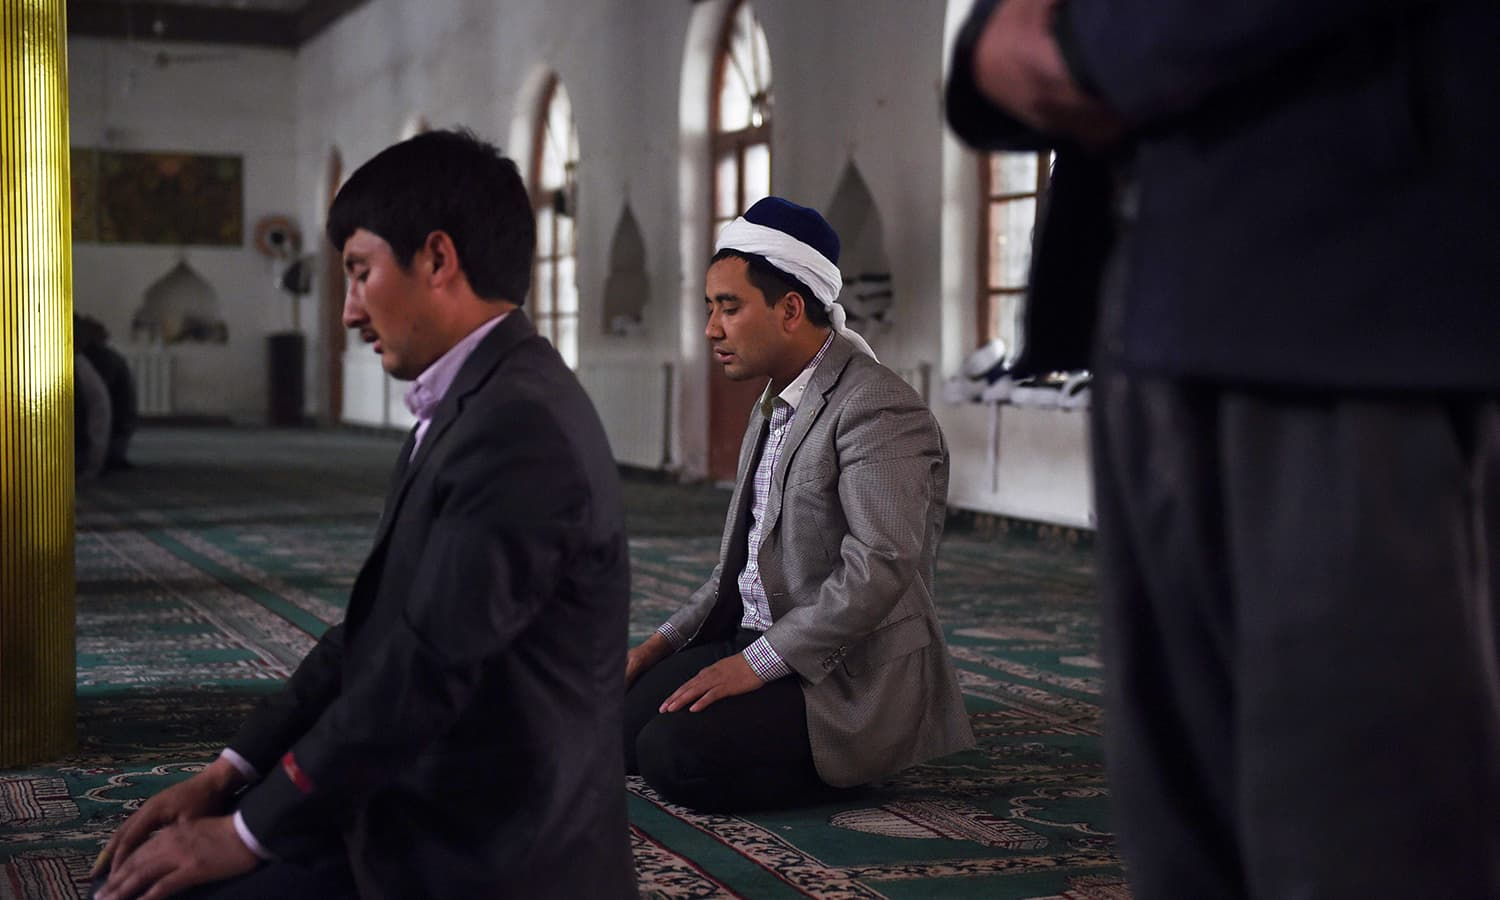 Uighur men pray in a mosque in Hotan, in China's western Xinjiang region in this April 16, 2015 photo. — AFP